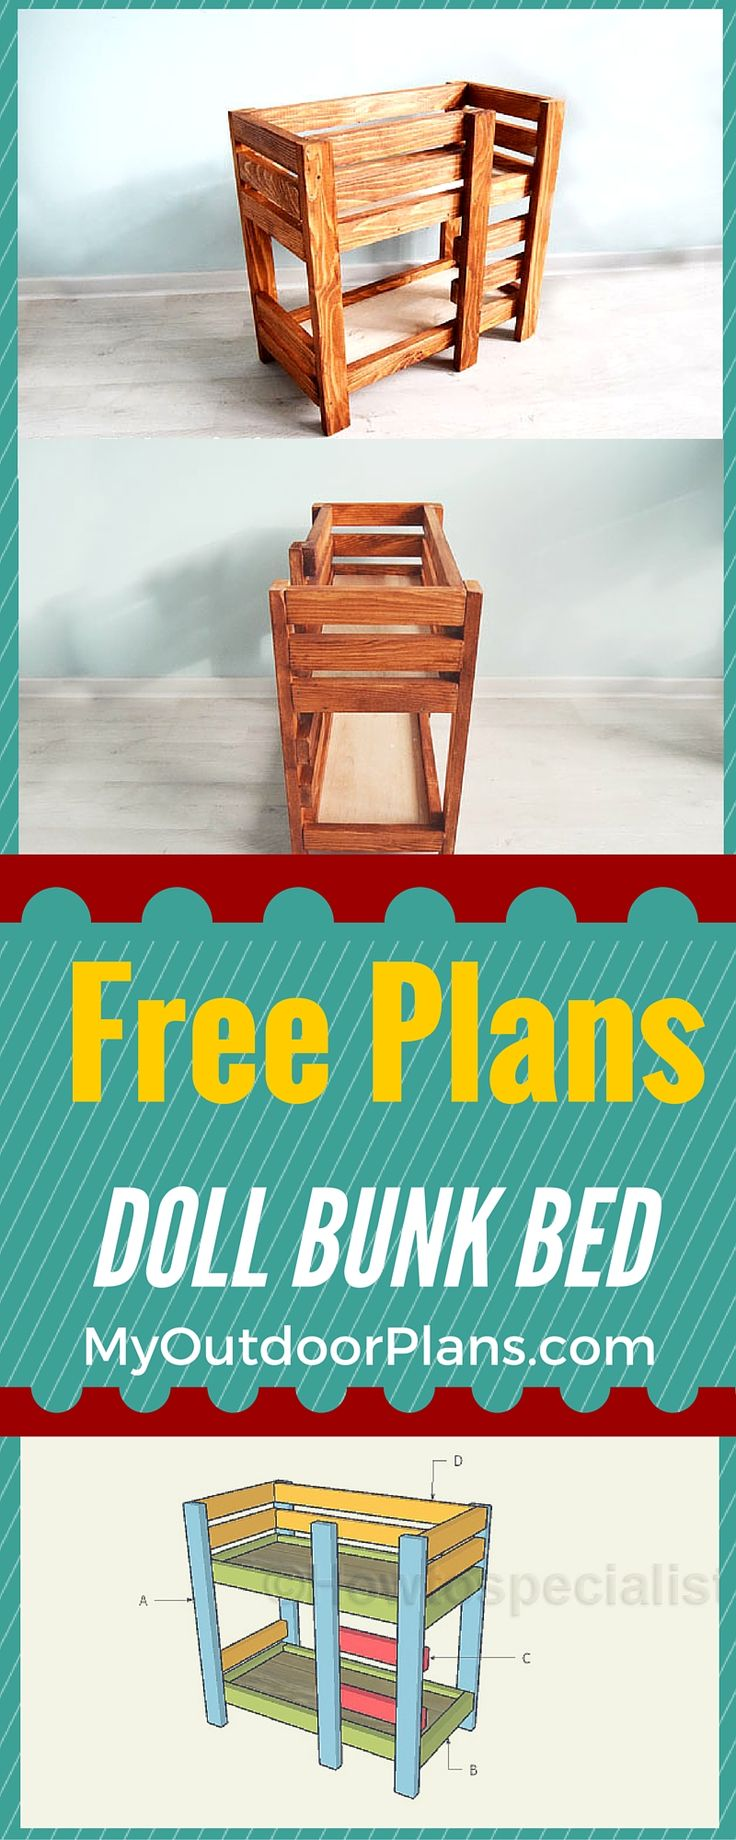 """Easy to follow doll bunk bed plans - Learn how to build a 18"""" american doll bunk bed from 1x2s and brad nails! It is that simple to create a handcrafted gift! Plans at howtospecialist.com"""